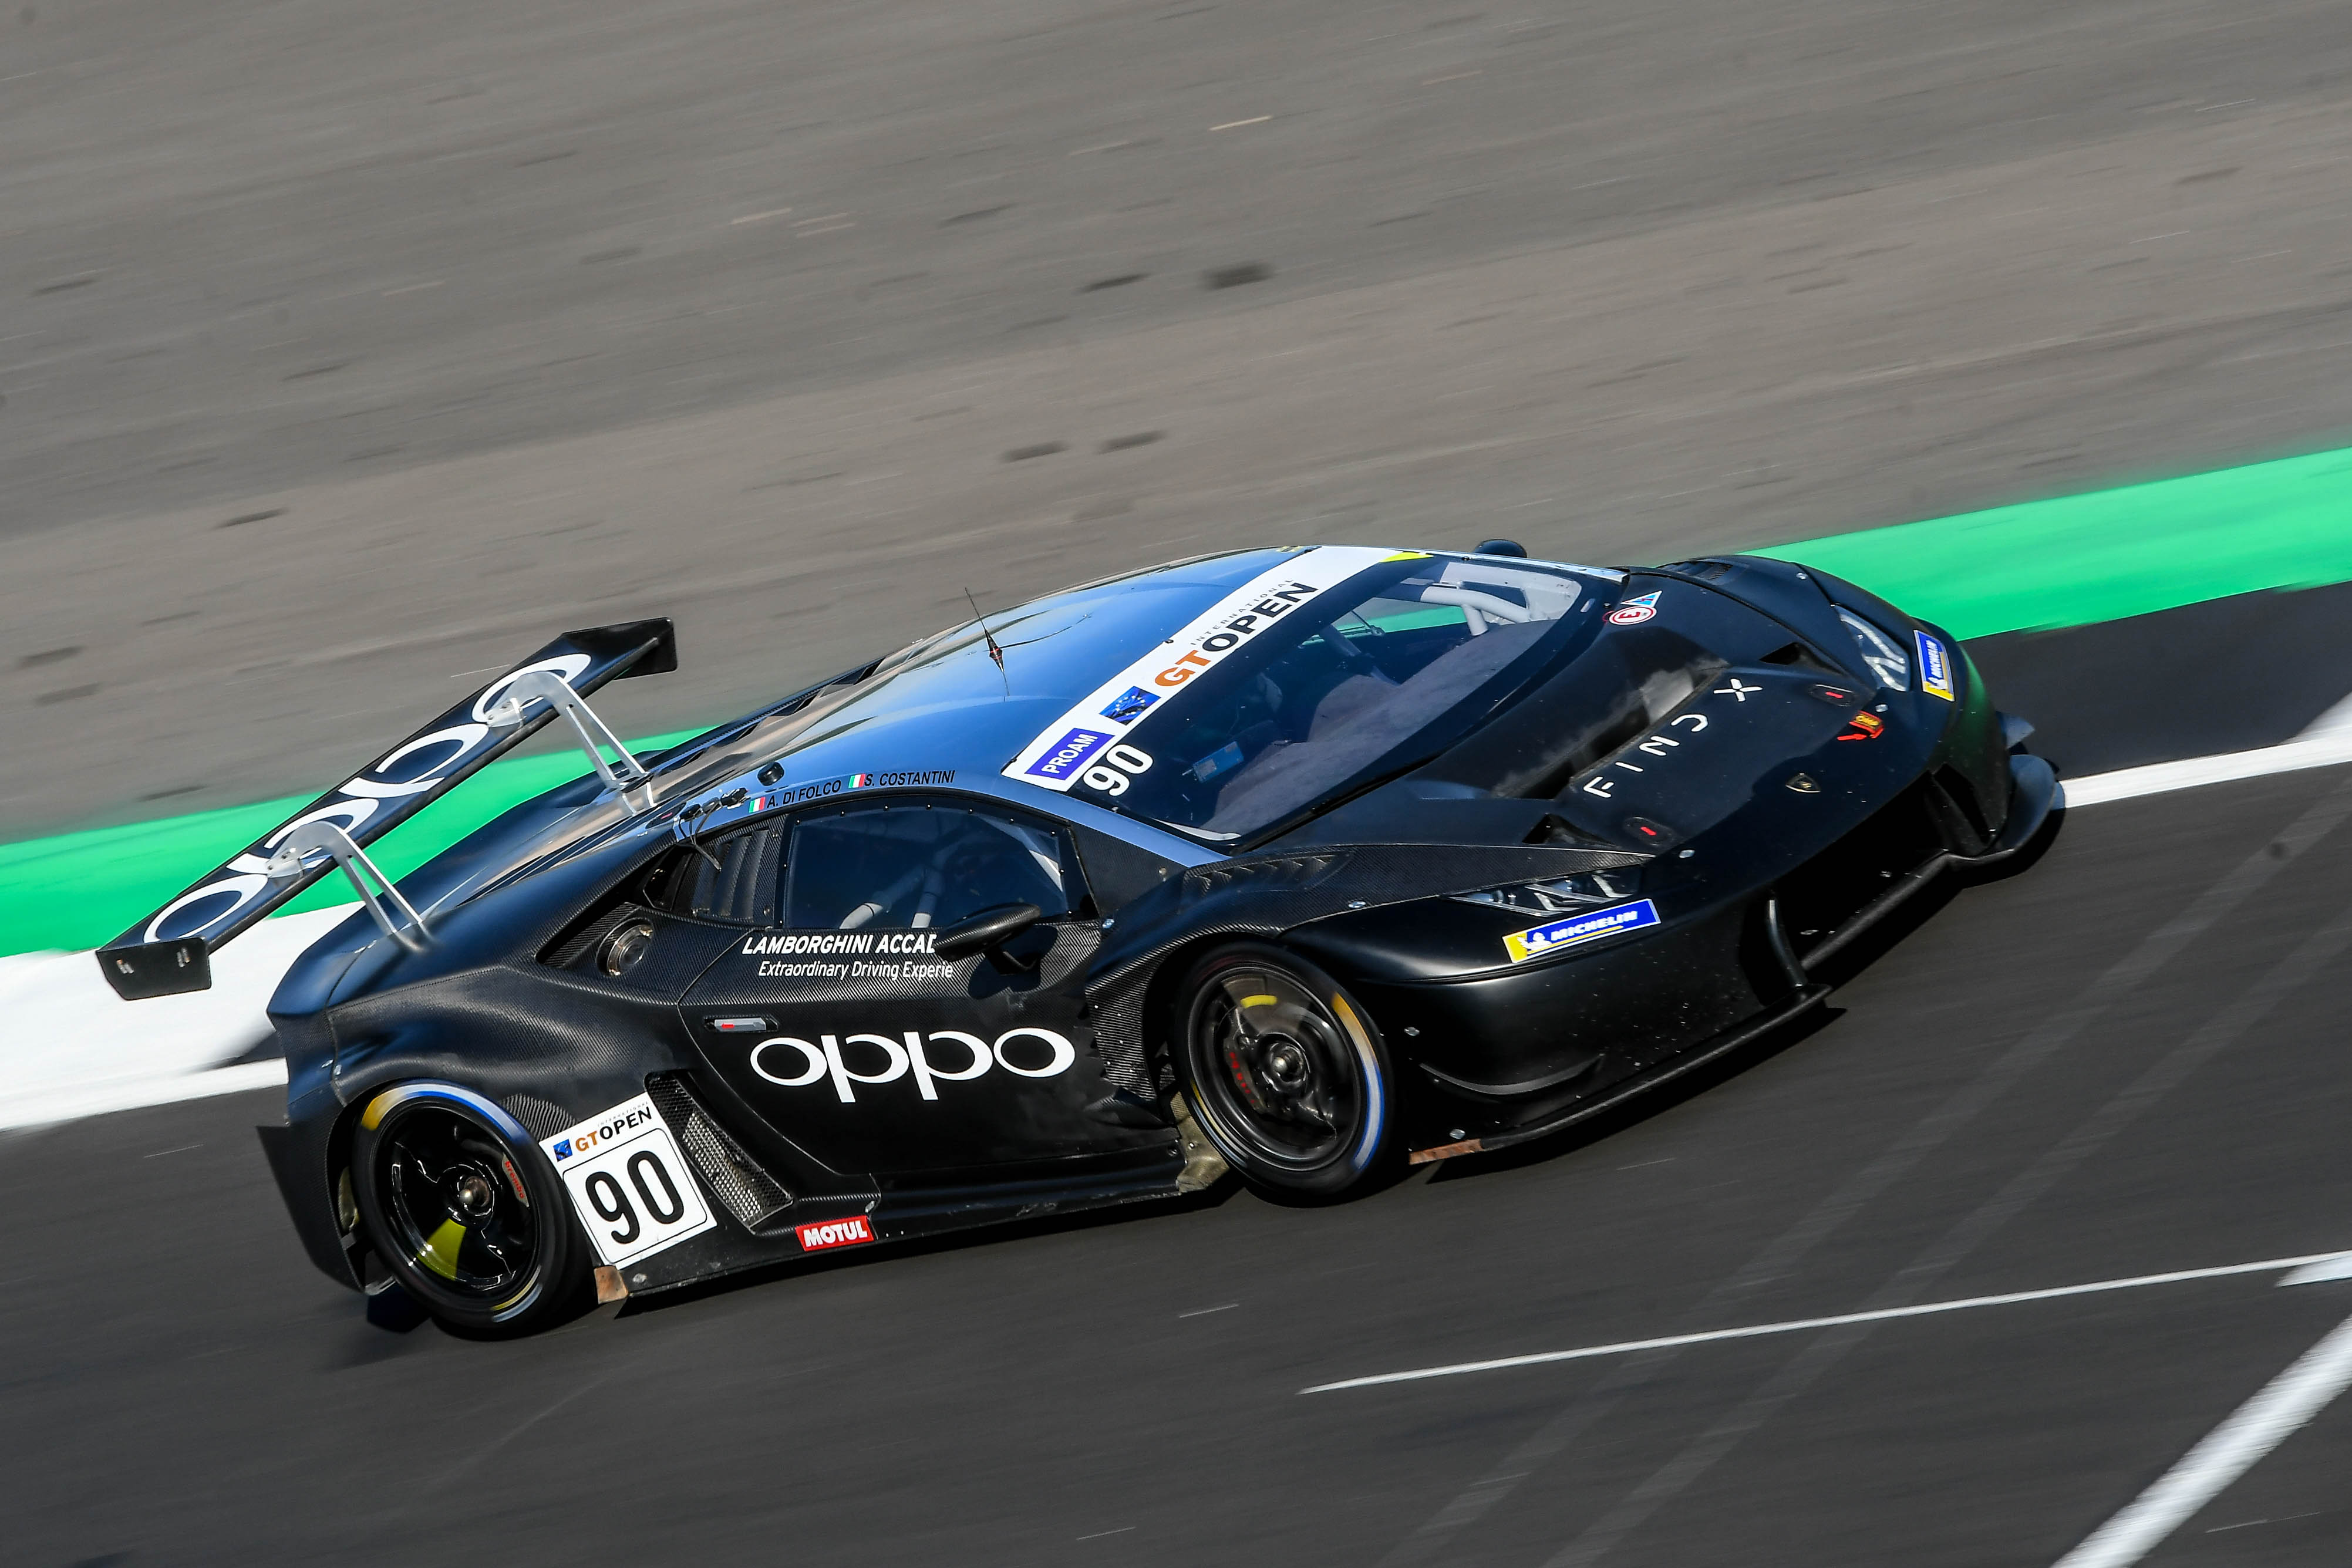 Target Racing secures second consecutive podium of the season at Silverstone